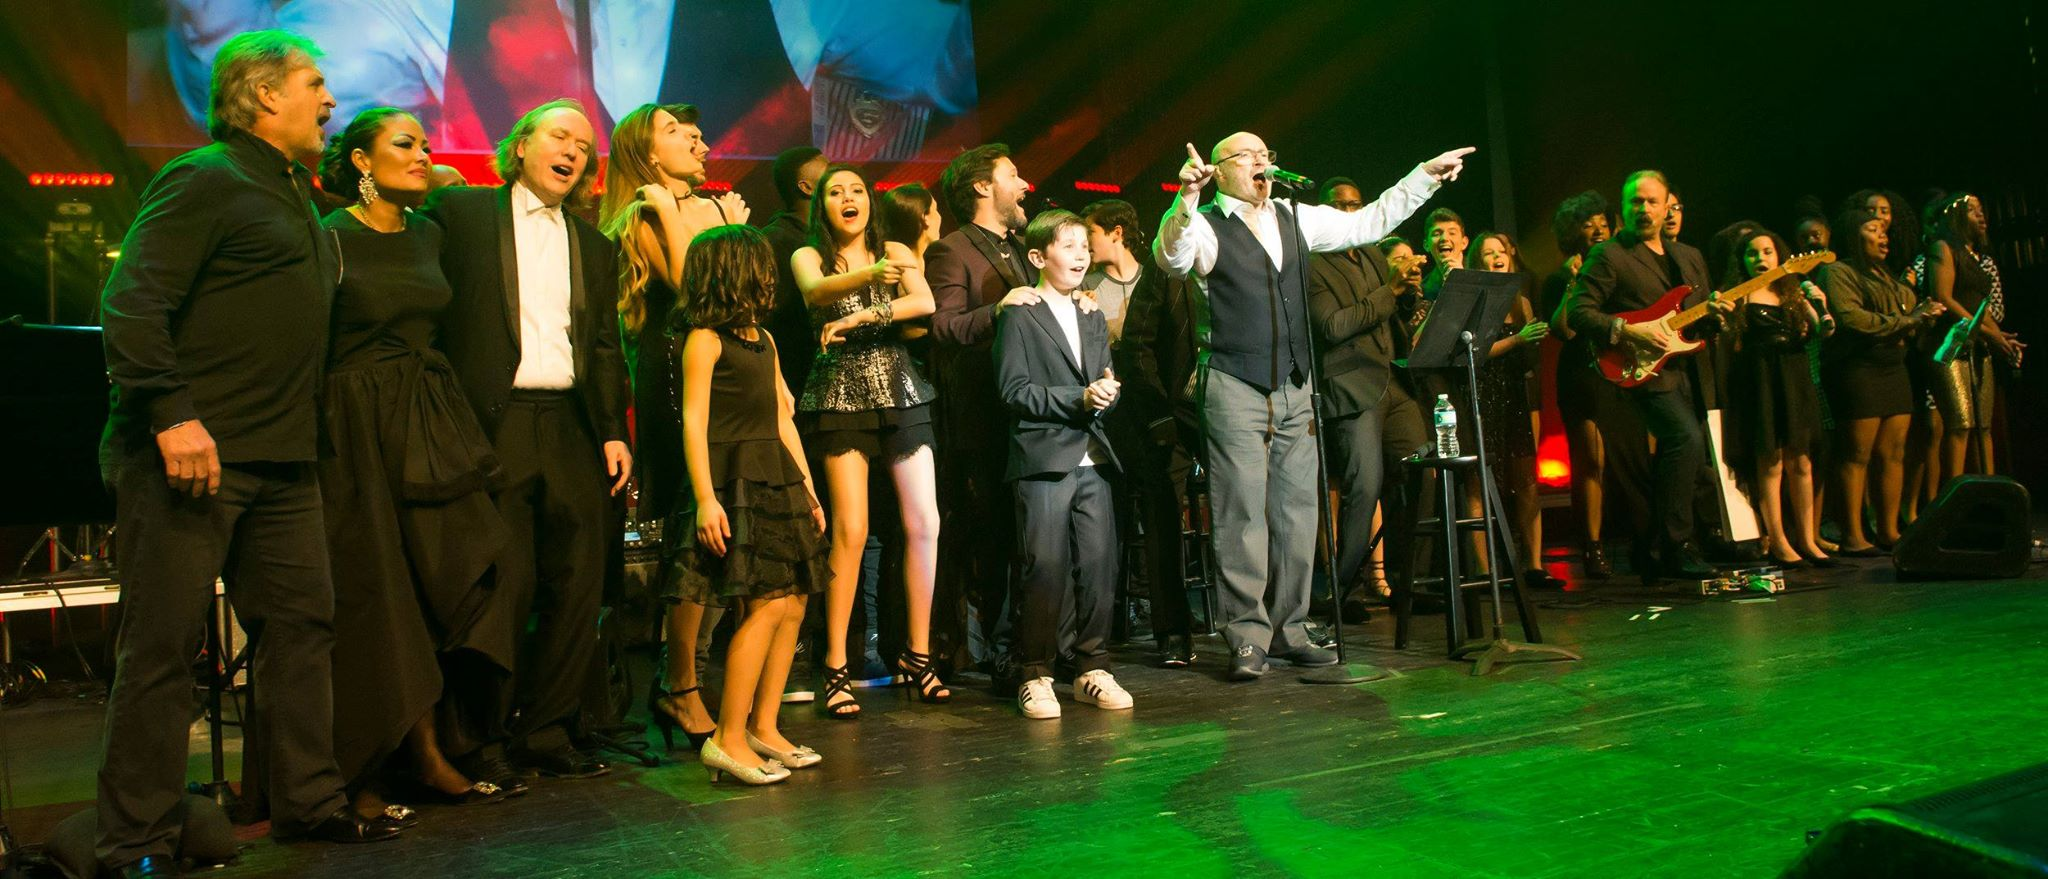 Encore! Phil Collins on stage with the children and the celebrities who came out to support the cause. Photo: Magical Photos/Mitchell Zachs